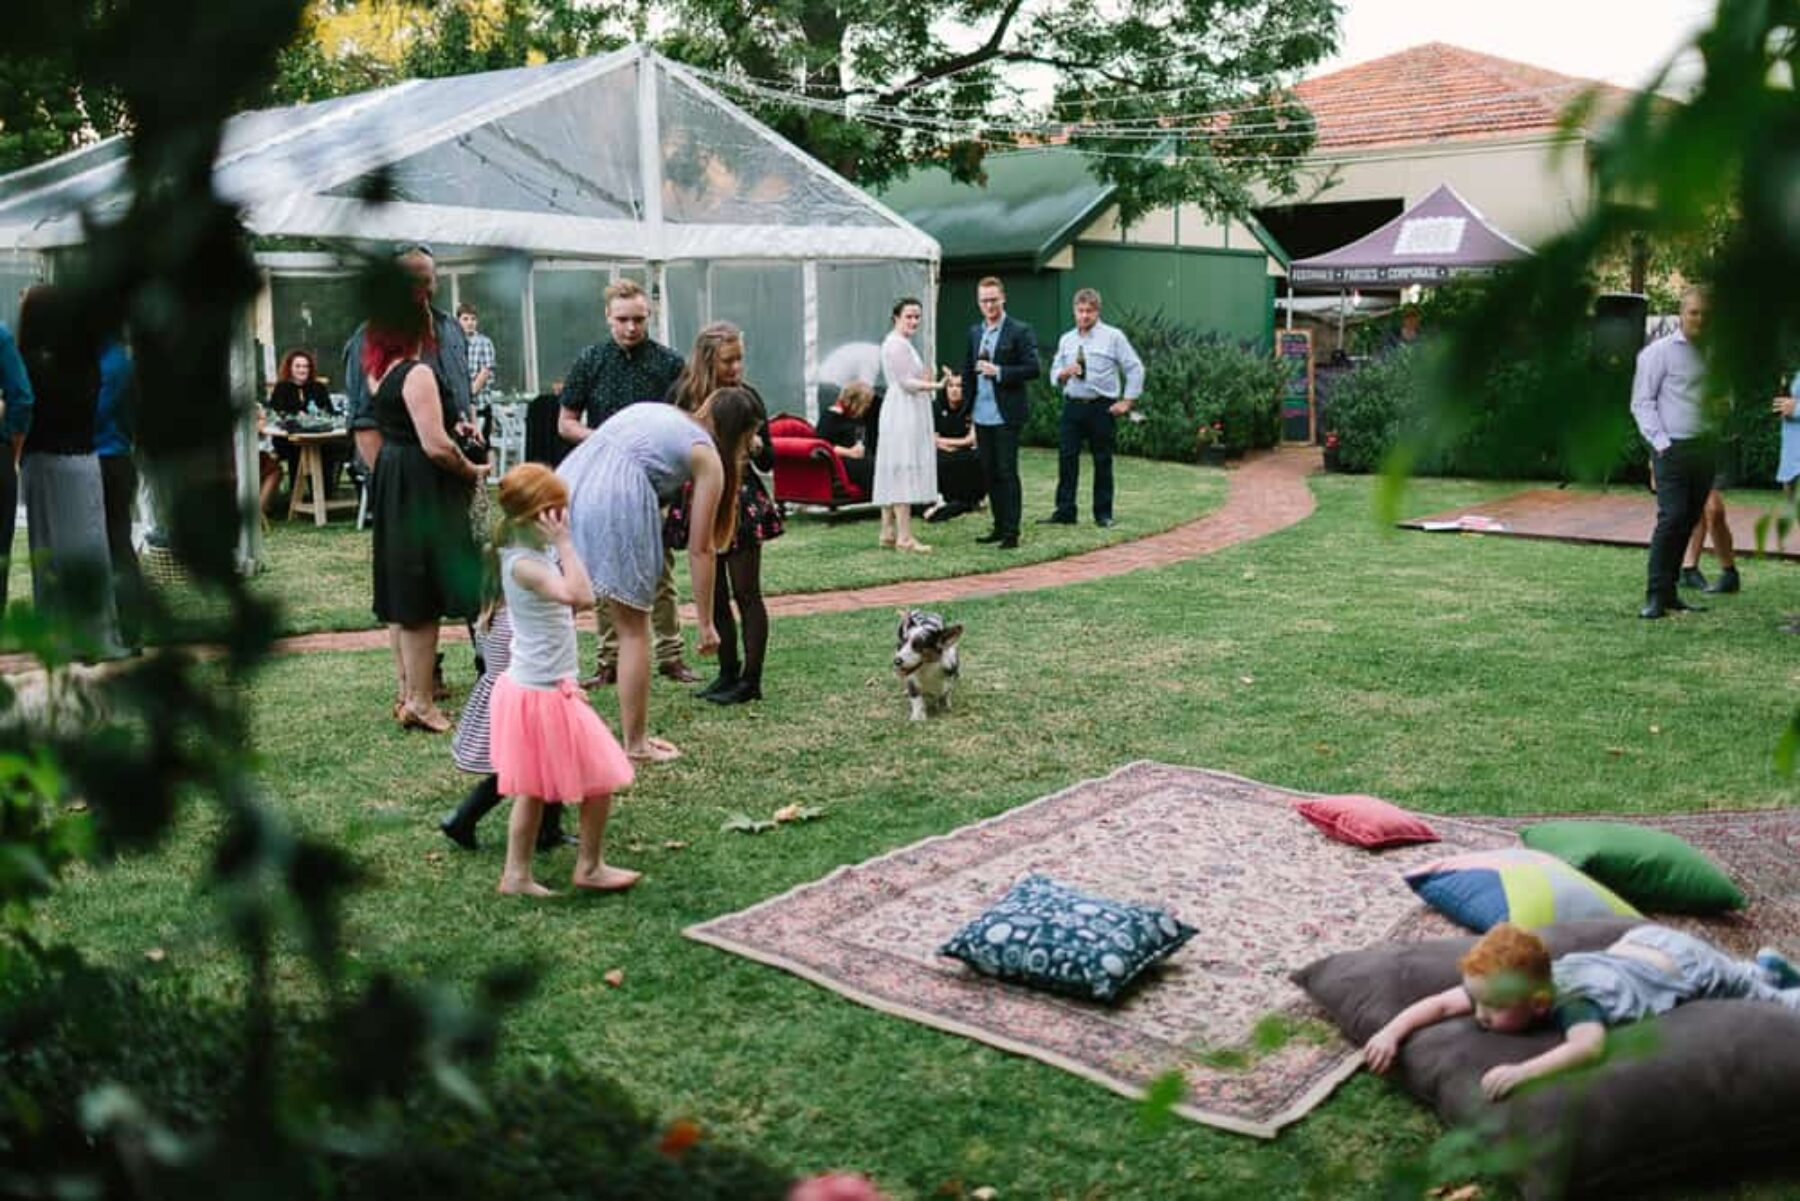 boho backyard wedding by Adeliade photographer Dave Pascoe